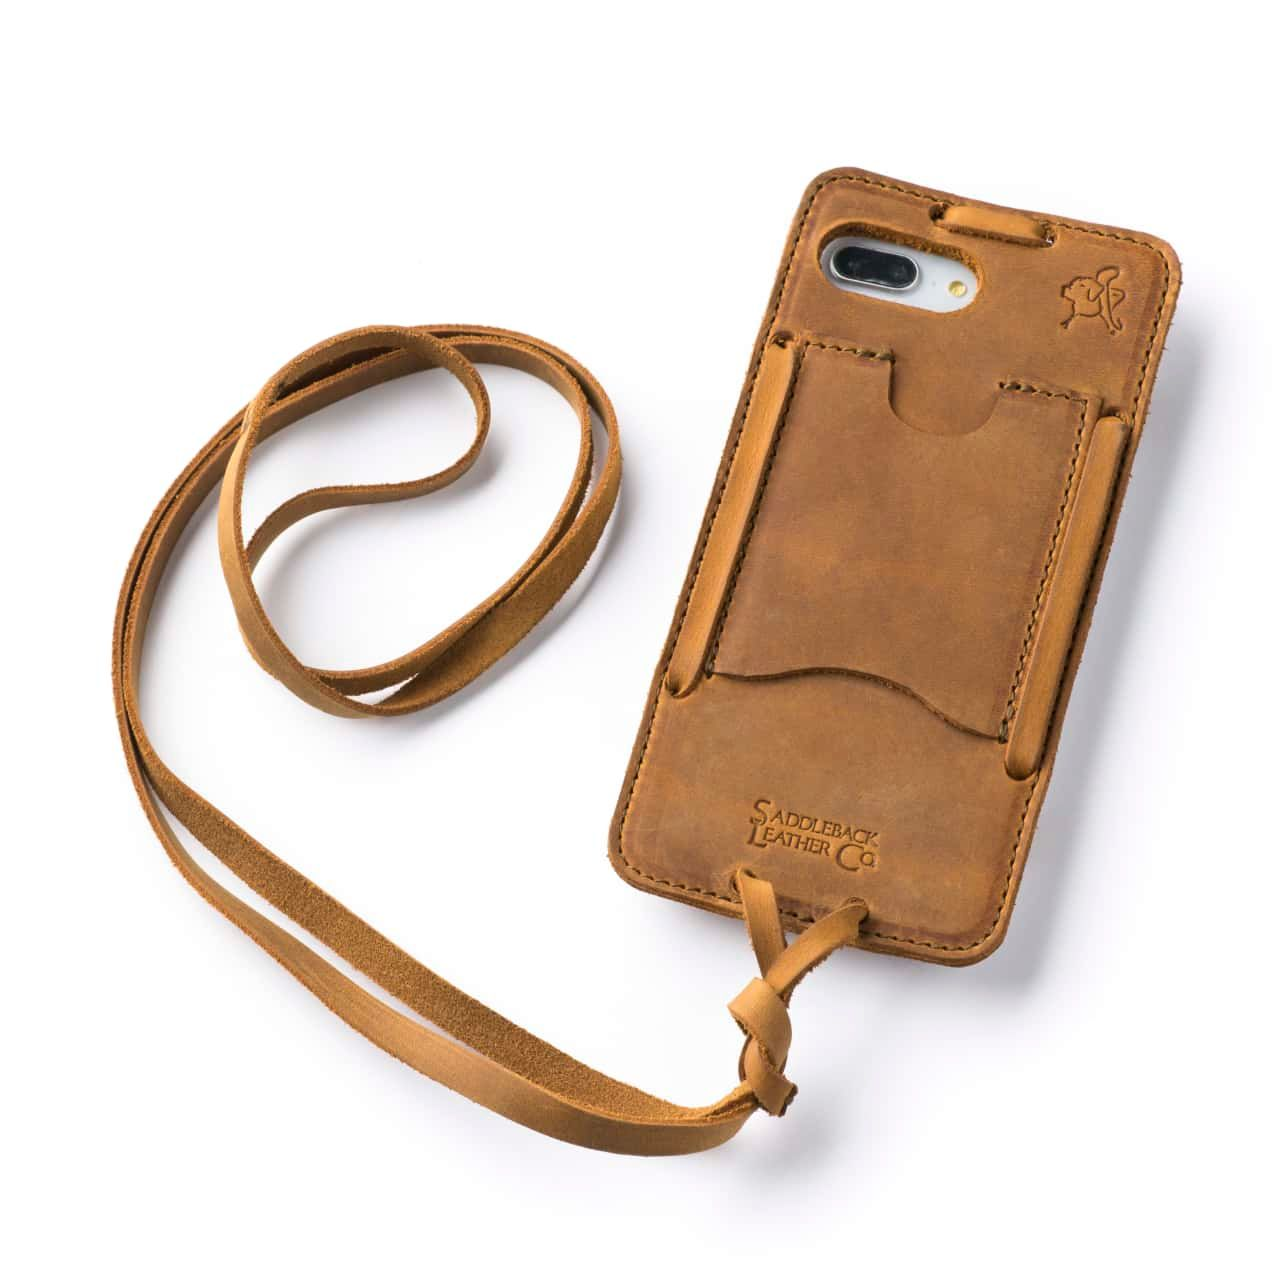 Leather iPhone 8+ Case in Color Tobacco with the Lanyard attached back angle showing empty card slot